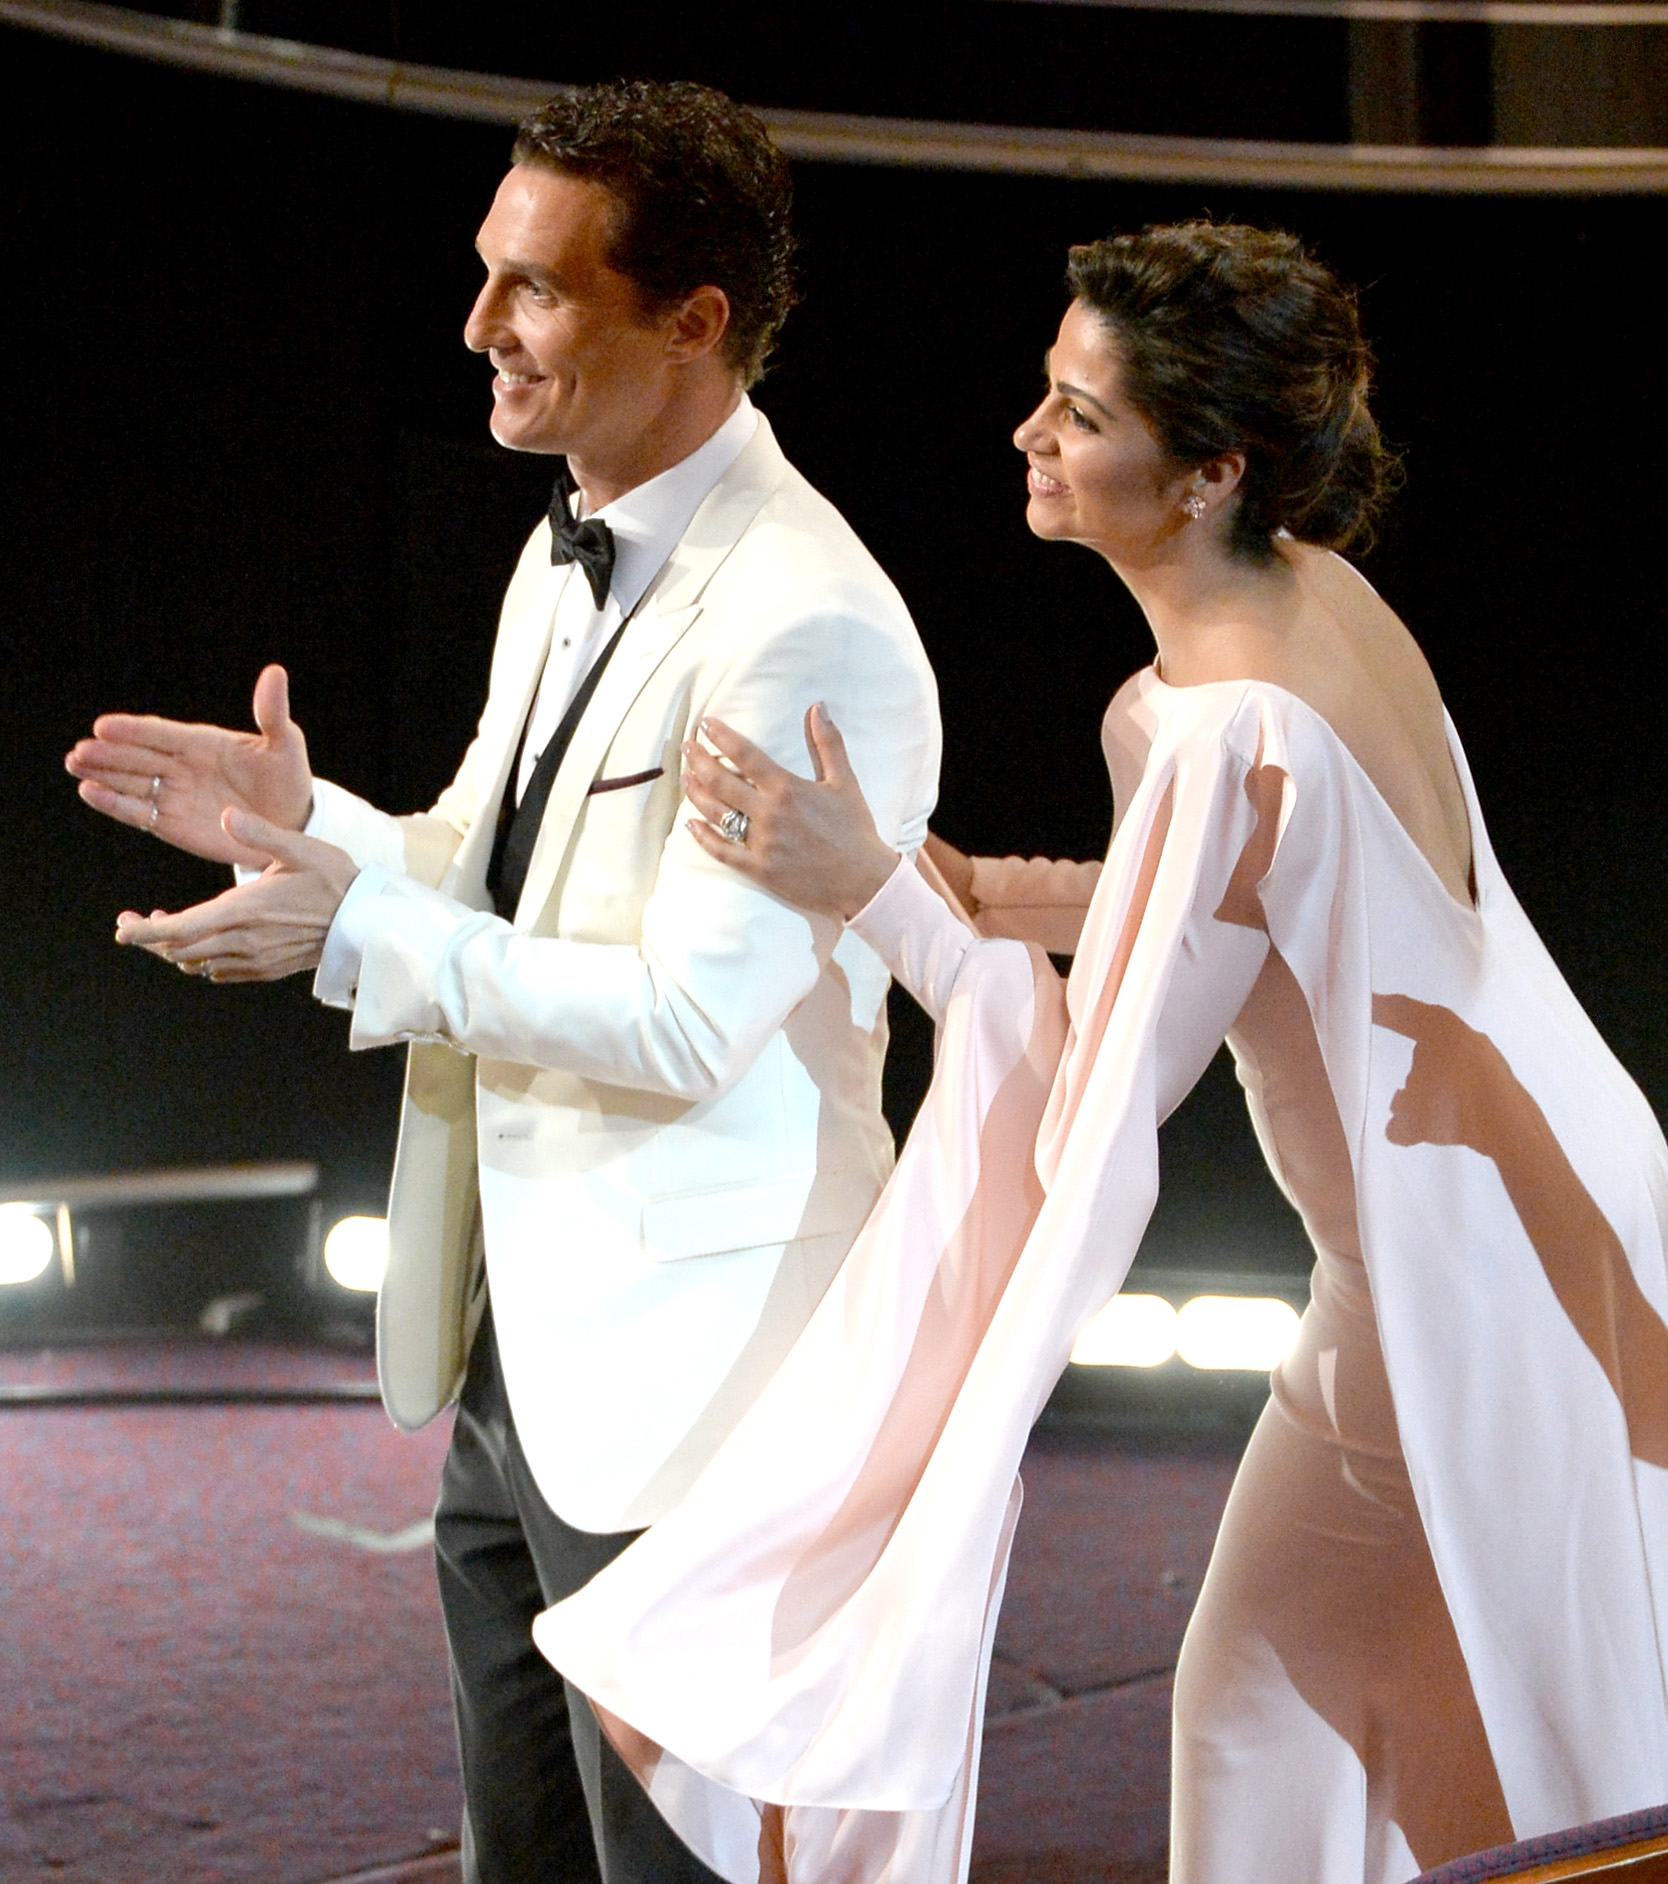 Matthew McConaughey and Camila Alves stood up to clap during the Oscars.